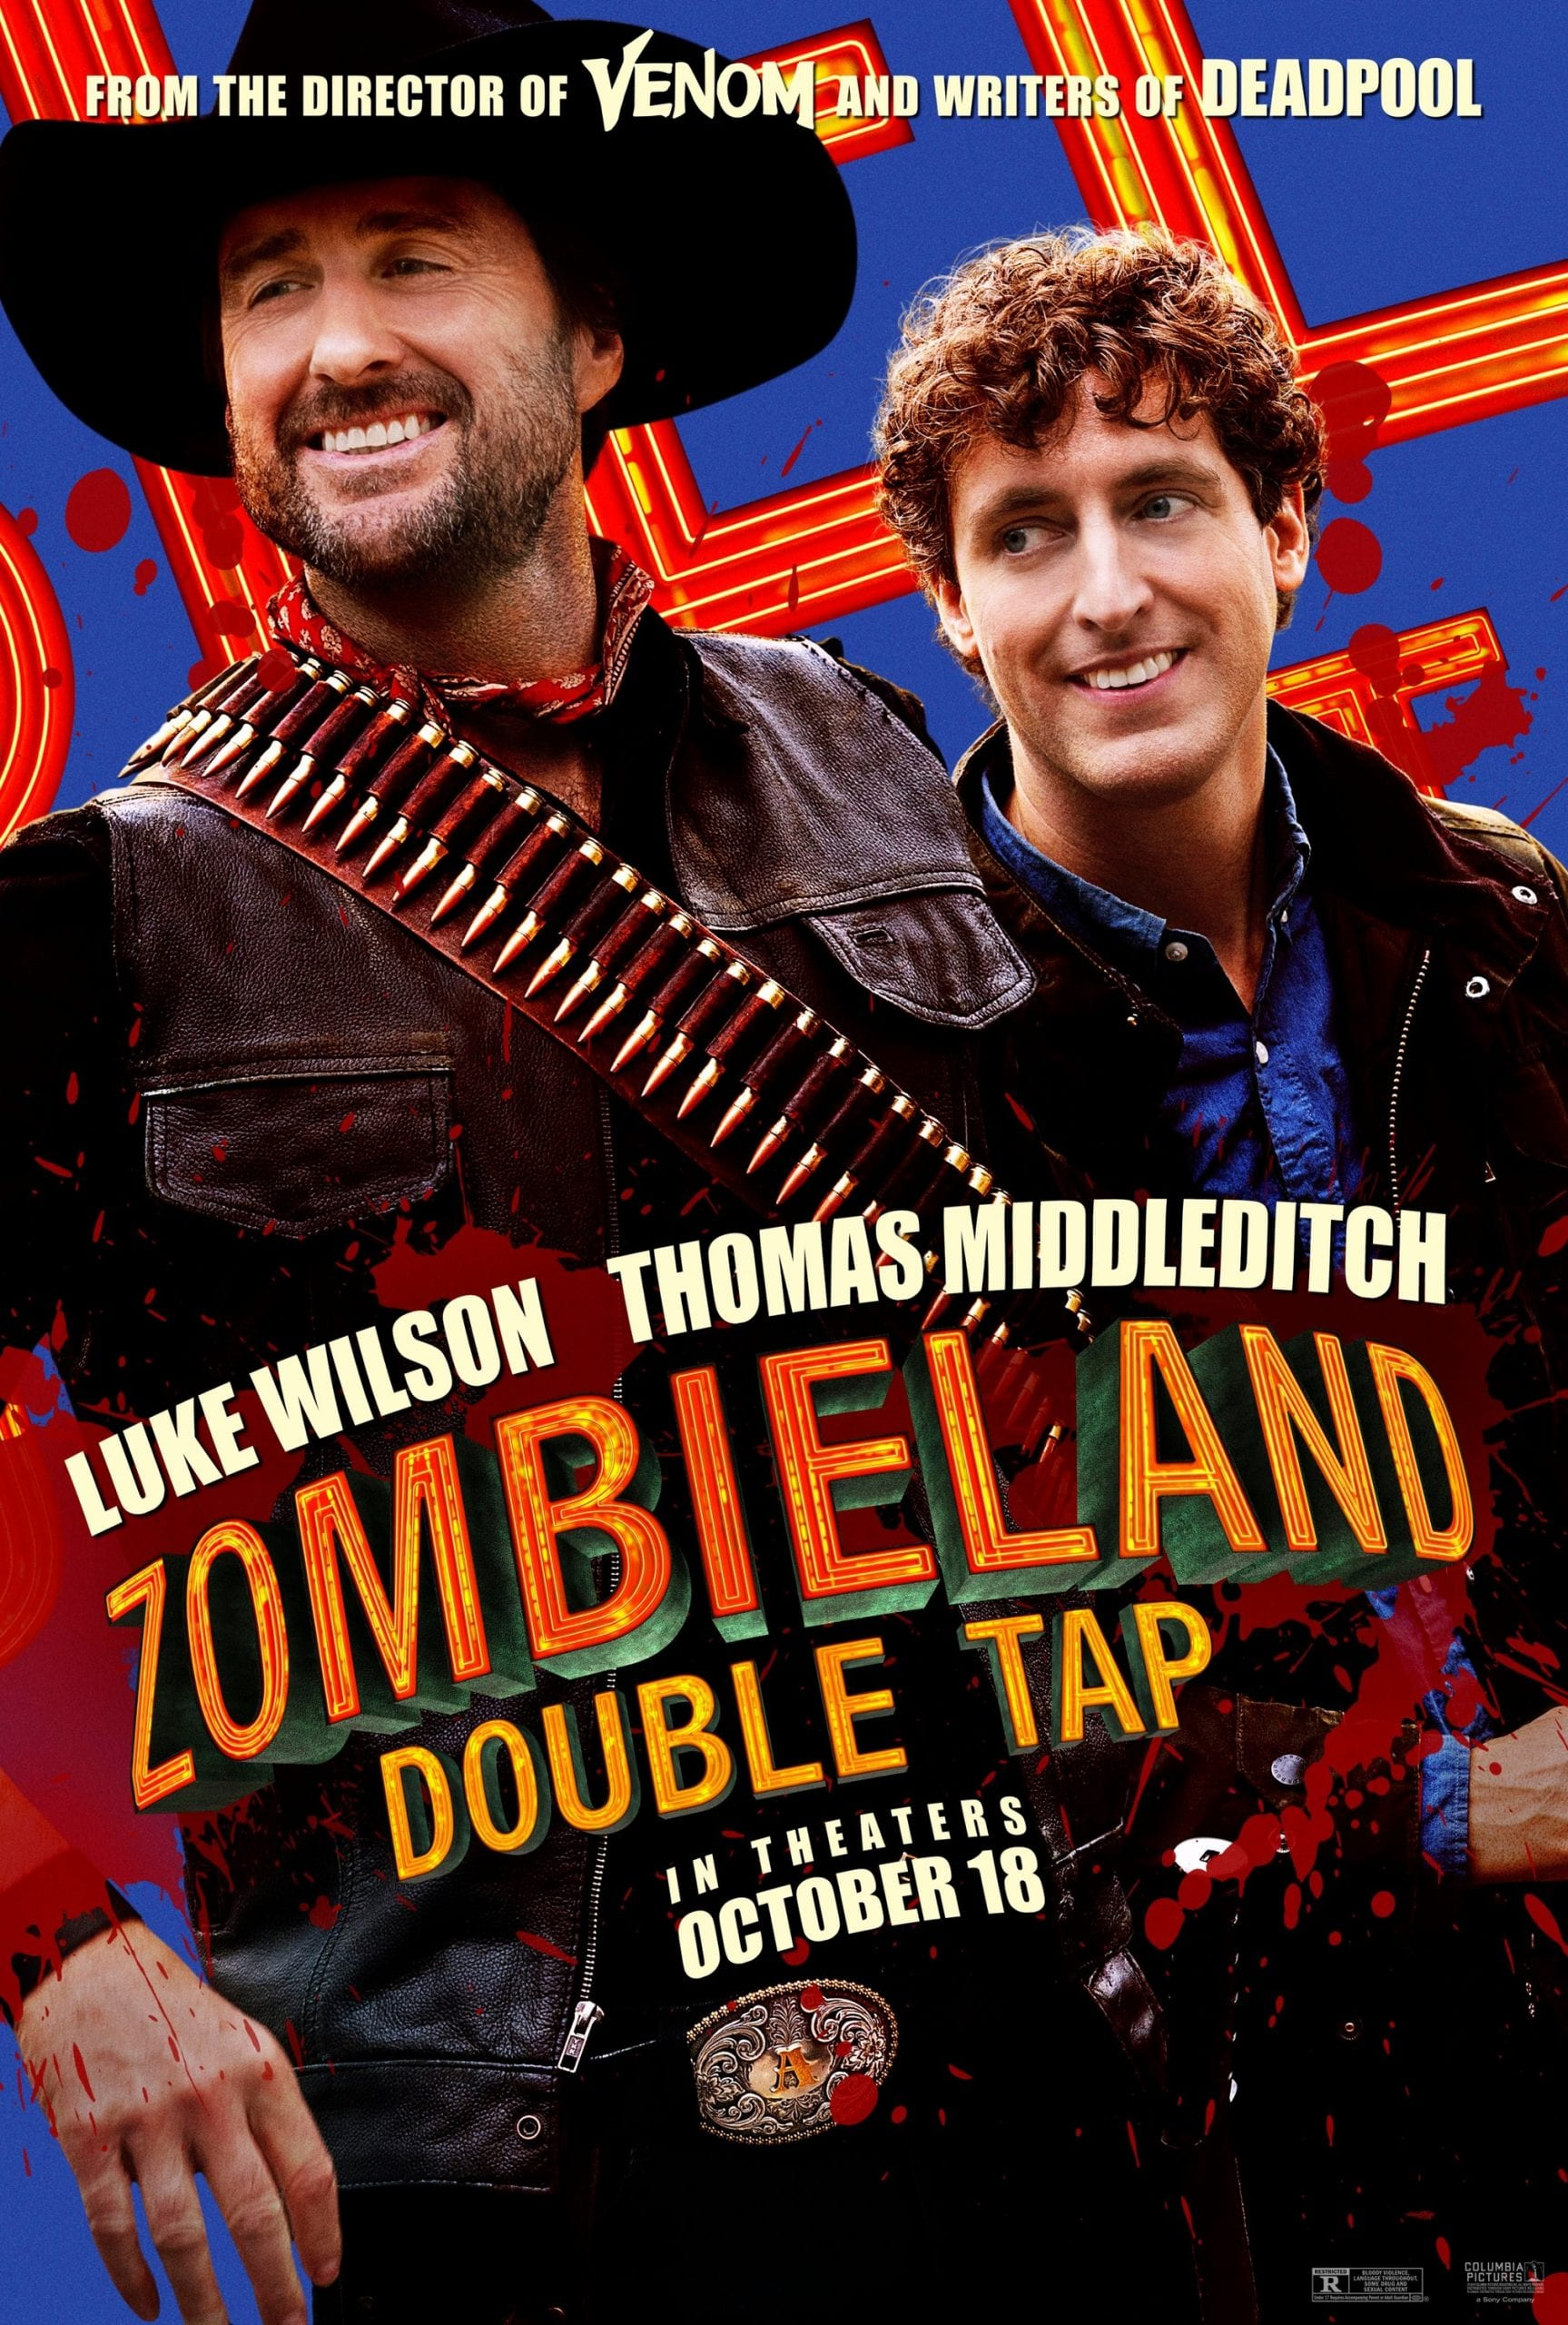 Zombieland Double Tap Character Posters Luke Wilson and Thomas Middleditch as Albuquerque and Flagstaff